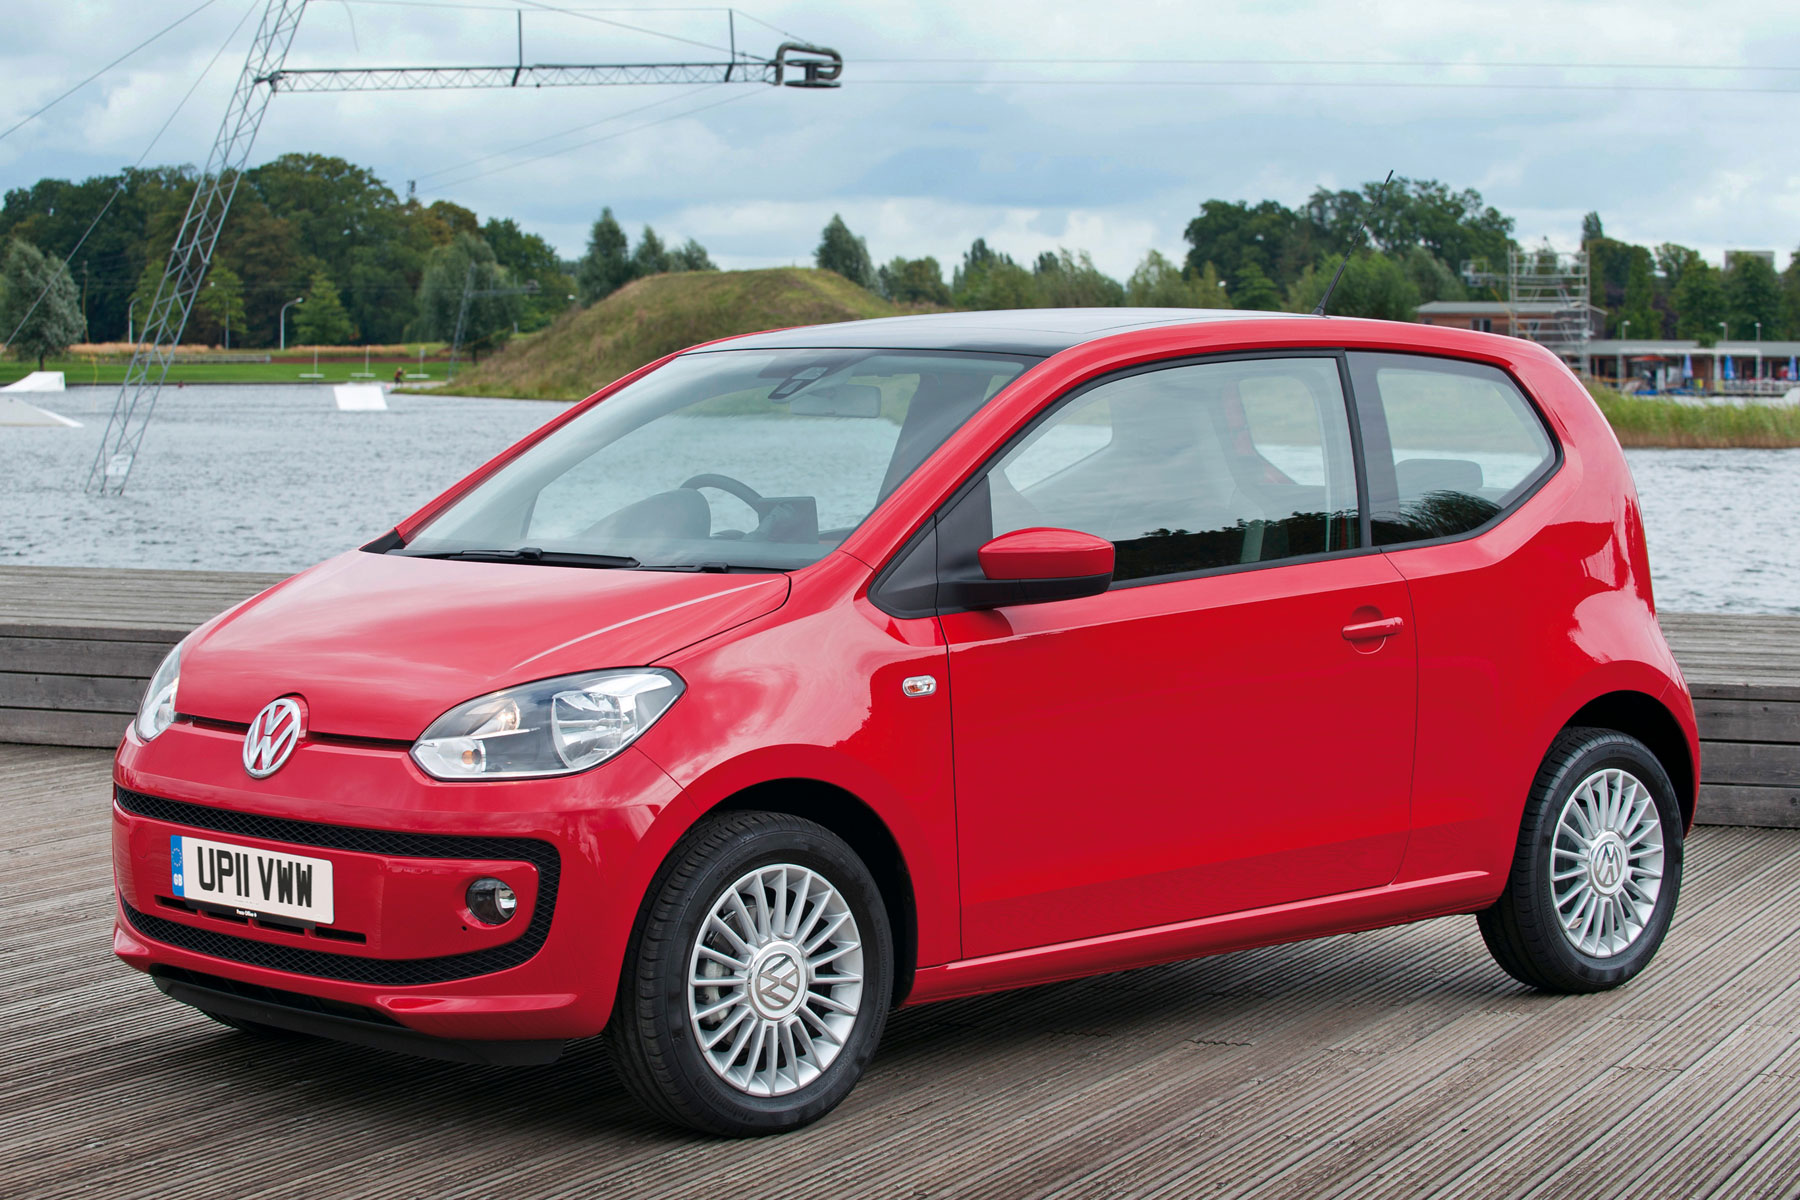 The 20 best first cars: Volkswagen Up